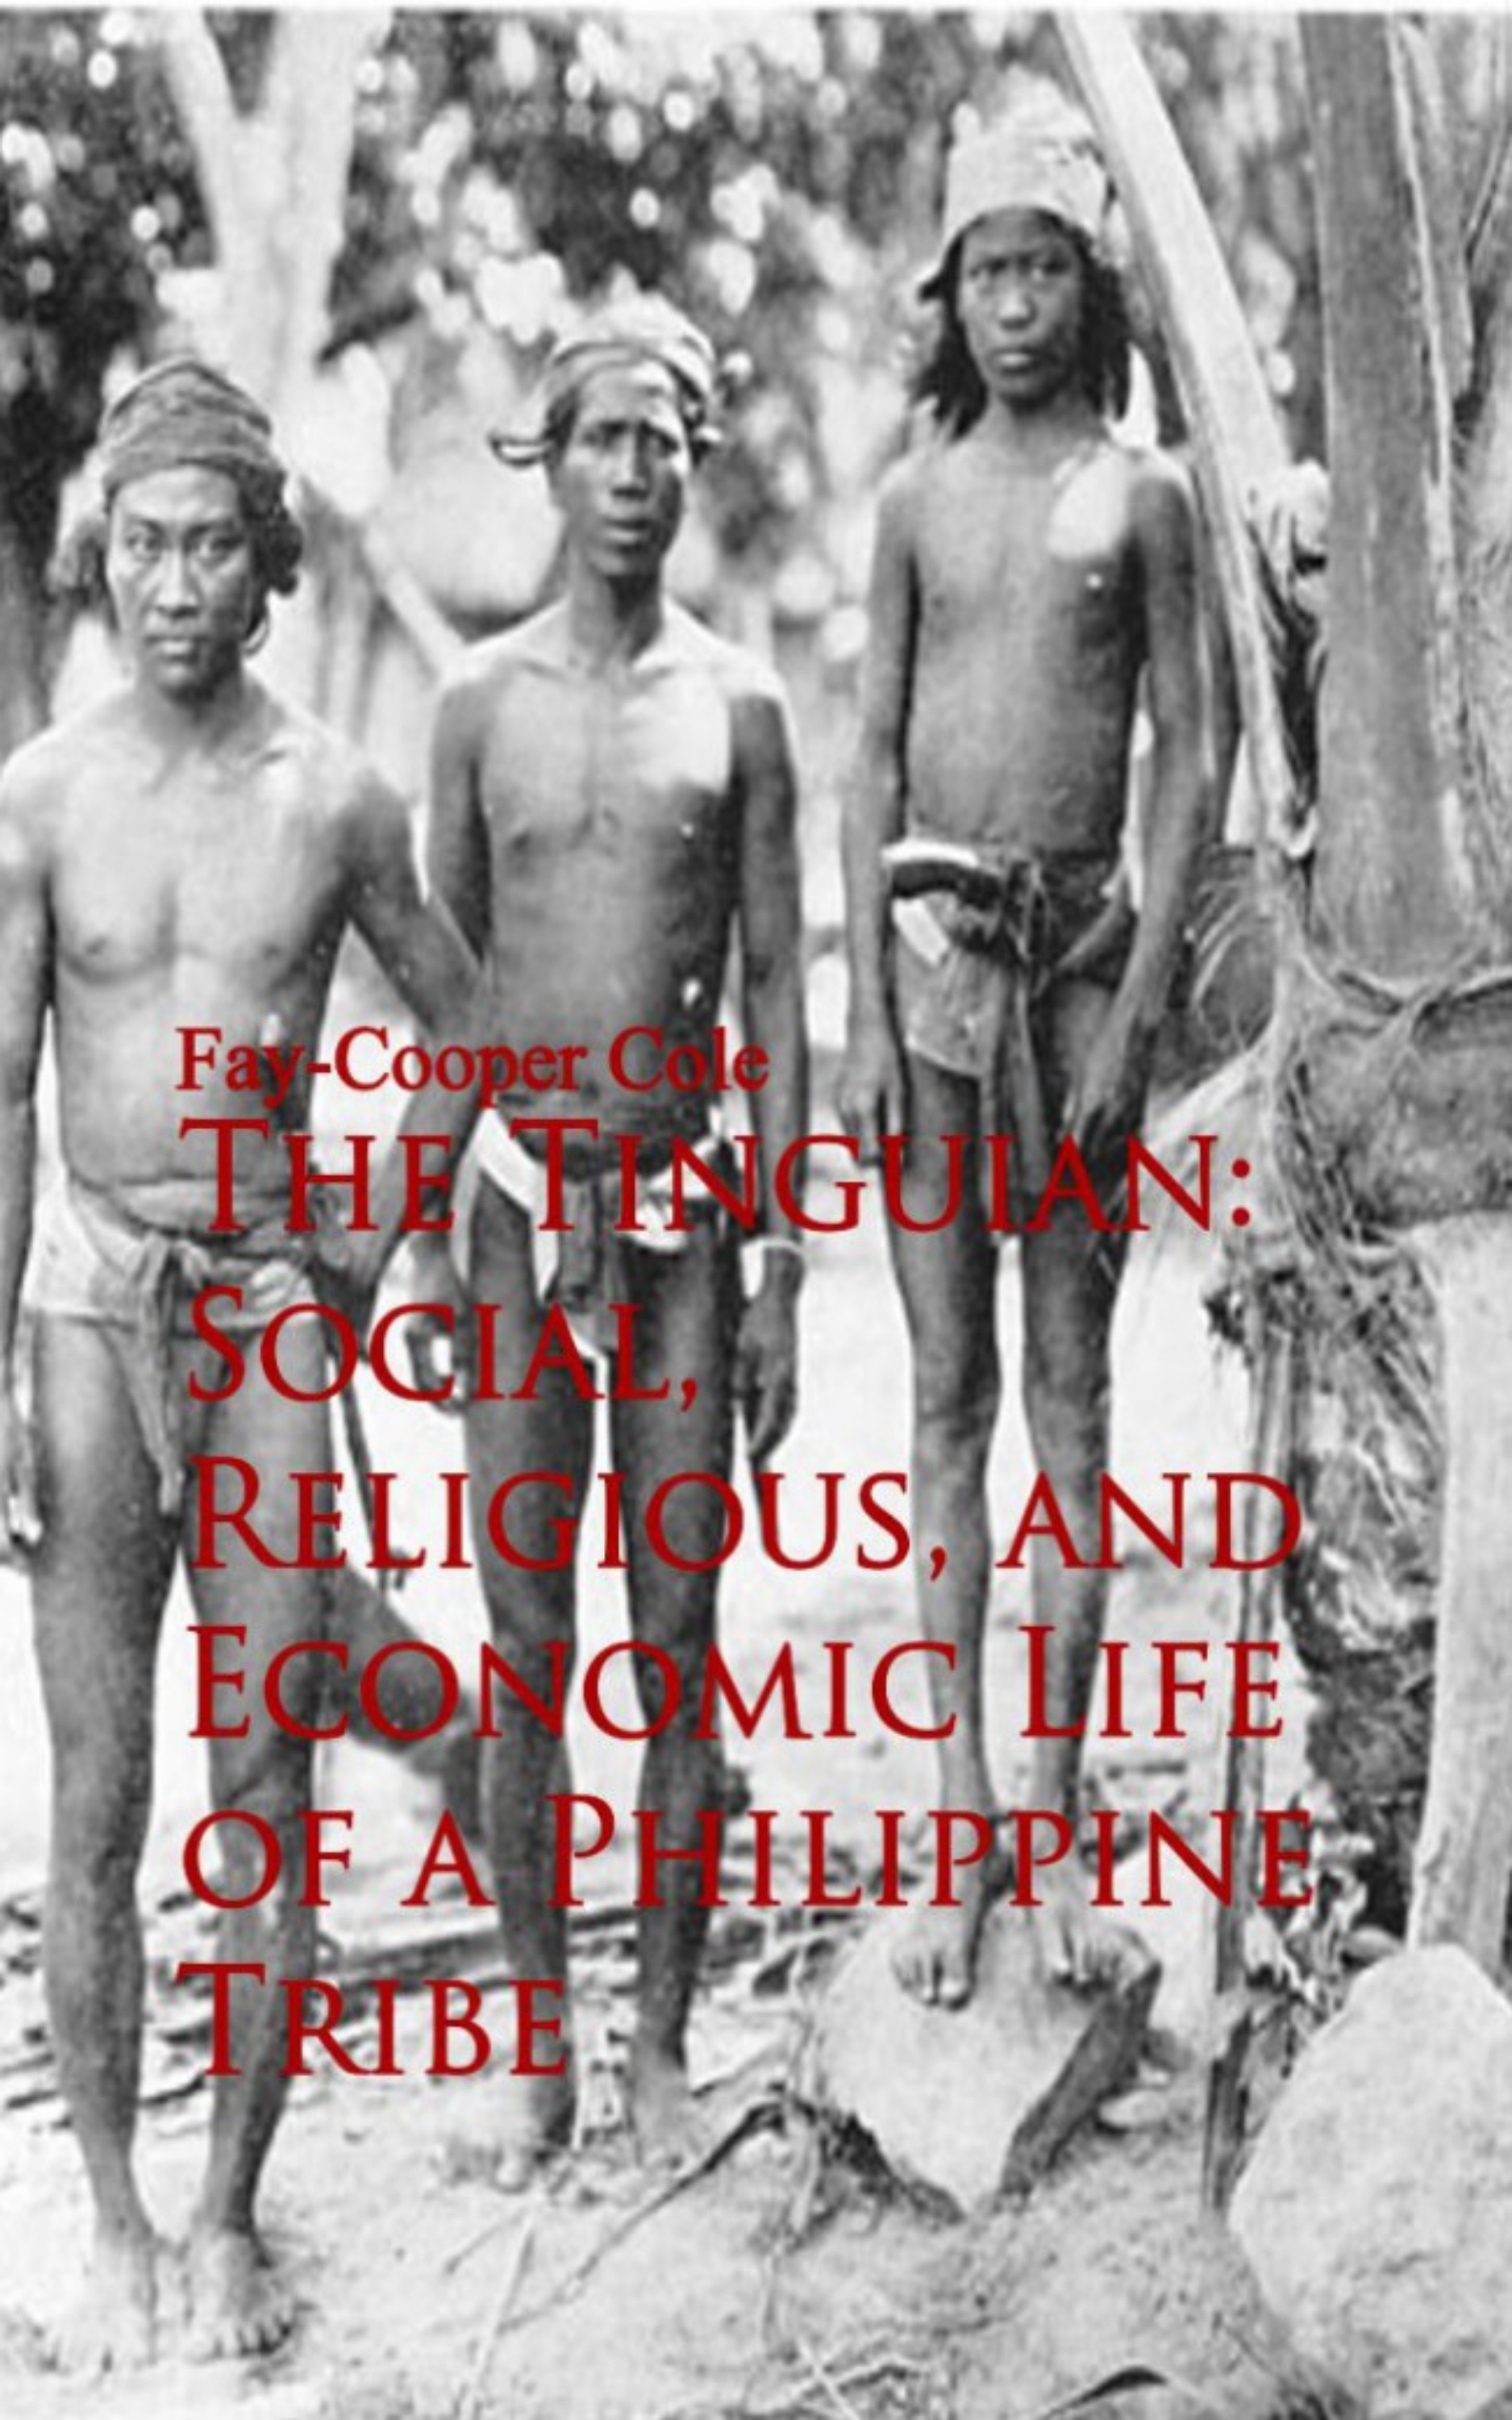 цена на Fay-Cooper Cole The Tinguian: Social, Religious, and Economic Life of a Philippine Tribe